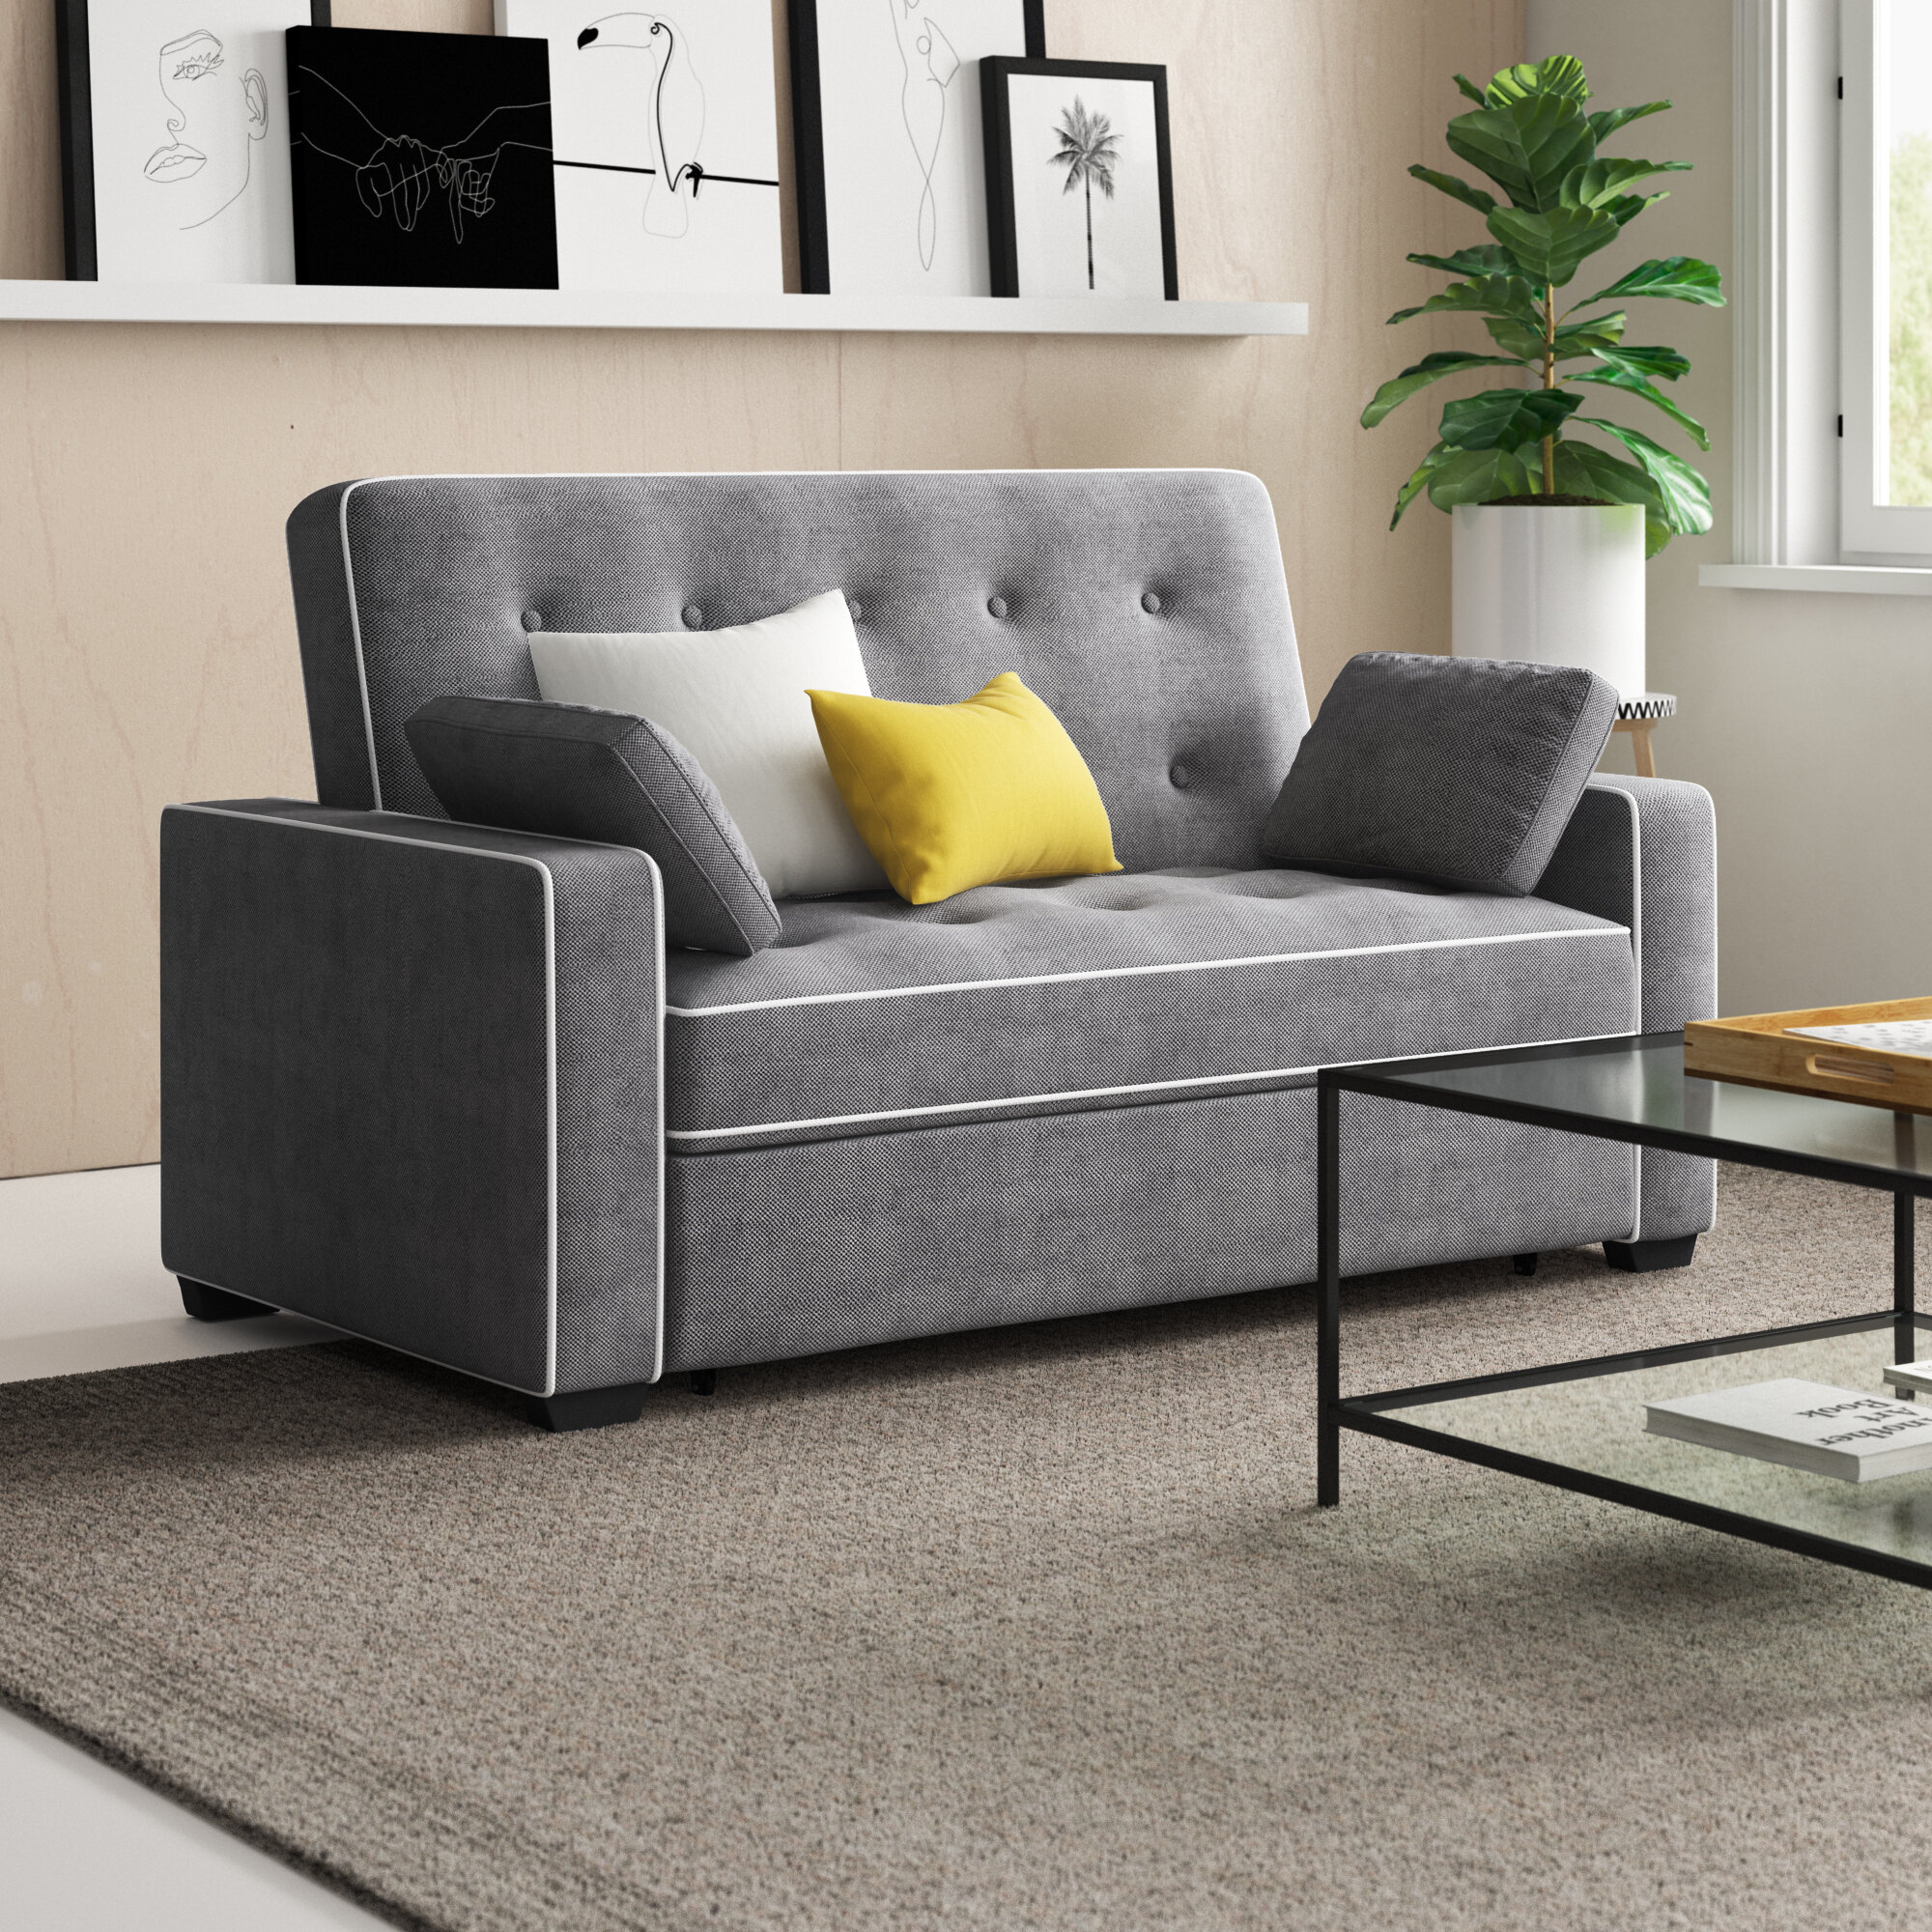 Tremendous Sleeper Sofas Youll Love In 2019 Wayfair Home Interior And Landscaping Transignezvosmurscom